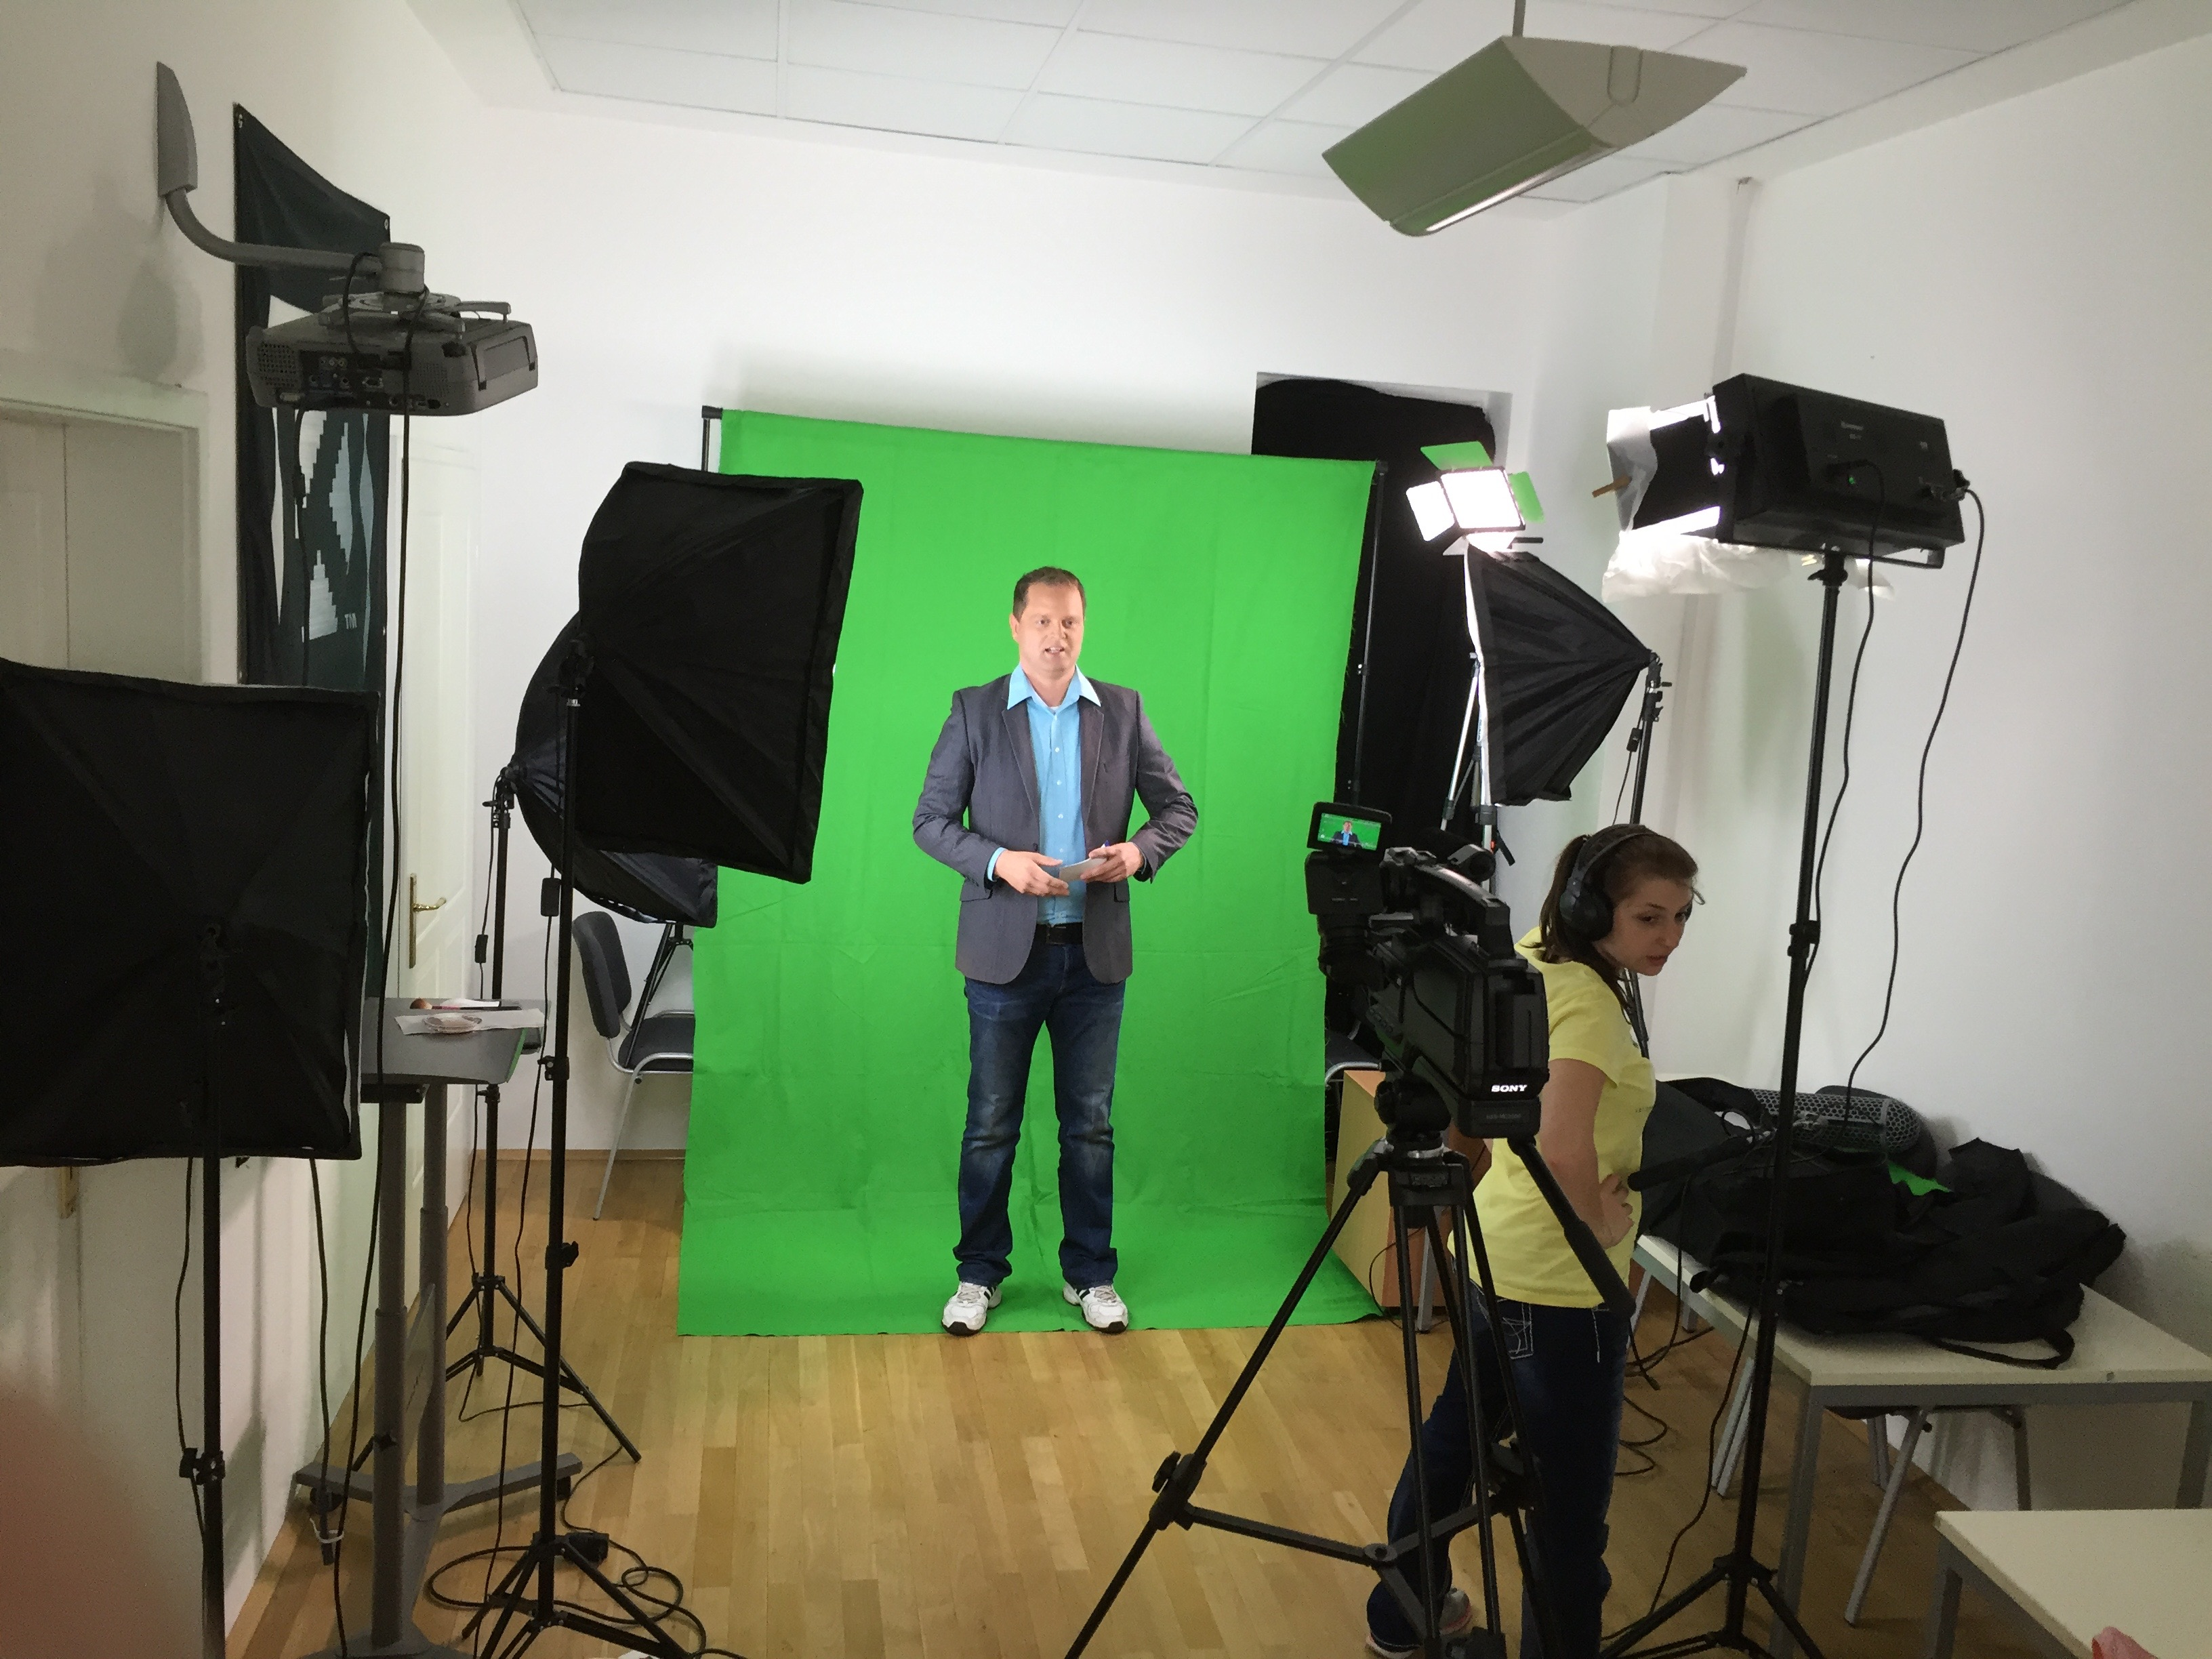 Anmoderation vor Greenscreen